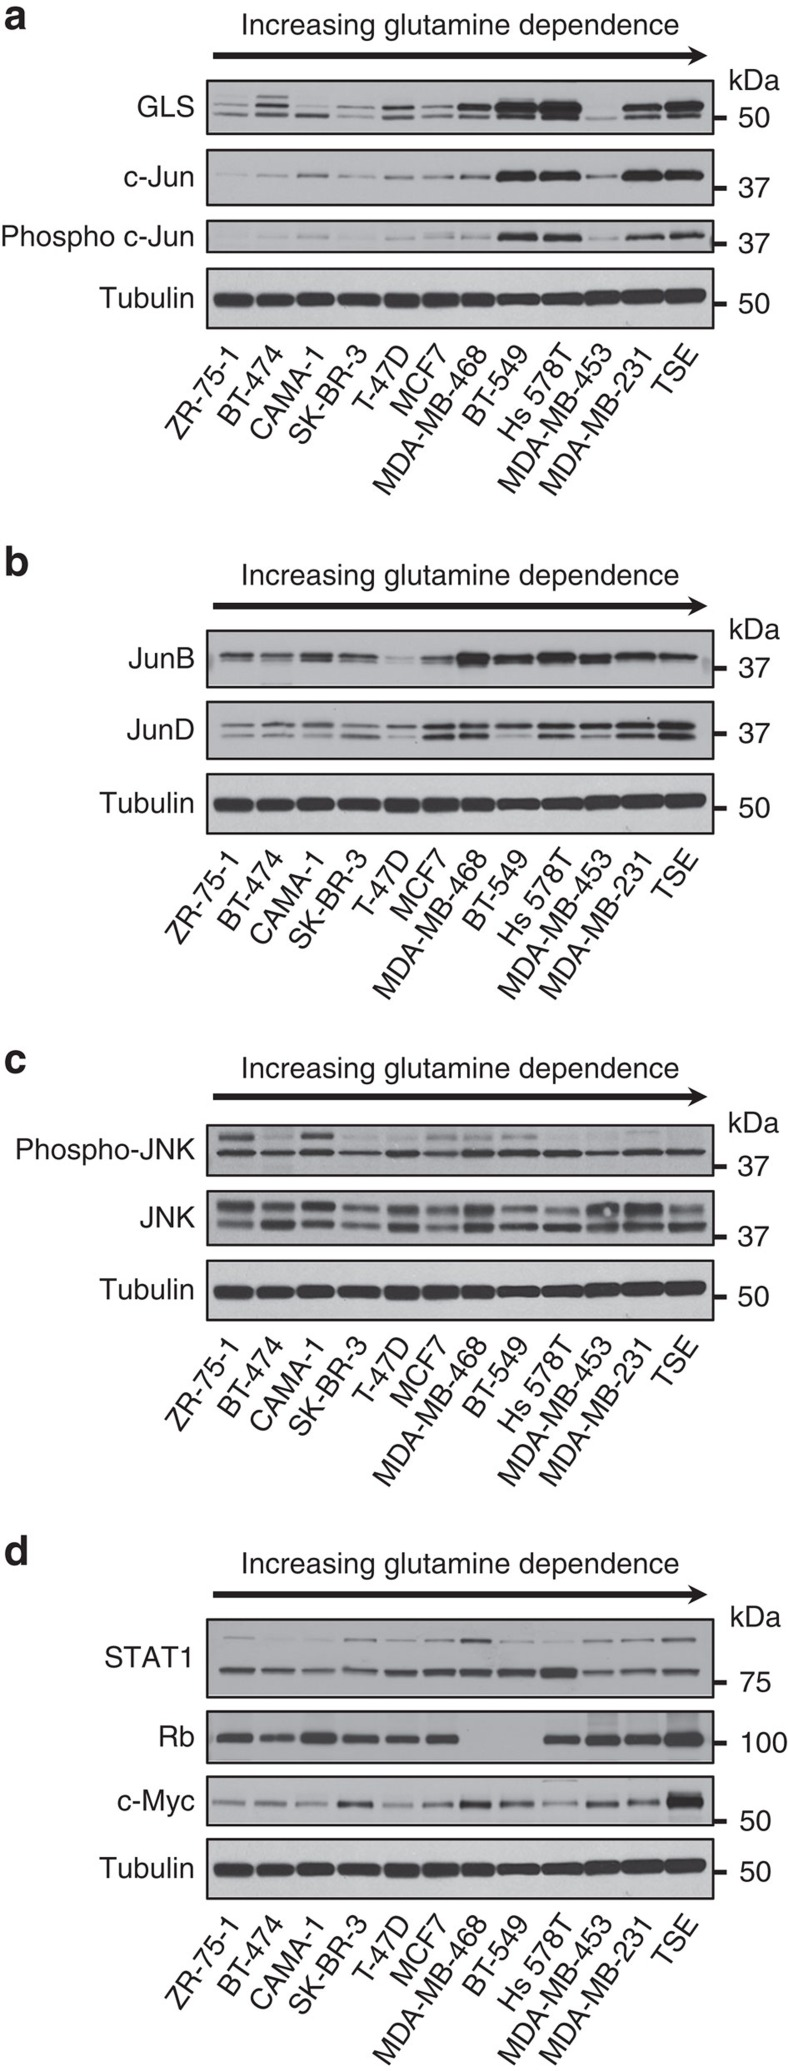 c-Jun correlates strongly with GLS levels in human breast cancer cell lines. Cells were collected at ∼60% confluency from RPMI growth medium supplemented with 10% FBS, and whole-cell lysates prepared and analysed by western blot. Samples were ordered according to glutamine dependence, increasing from left to right ( Supplementary Fig. 3 ). ( a ) Correlation between c-Jun/phospho-c-Jun and GLS levels. Quantification of GLS and c-Jun band intensities allowed a Pearson correlation coefficient of 0.85 to be determined ( Supplementary Fig. 4a ). ( b ) Other Jun-family members do not correlate strongly with GLS levels. ( c ) Under 10% FBS culture conditions, p46 JNK (lower band) is active in all of the breast cancer cell lines. Neither JNK nor phospho-JNK correlate with GLS levels. ( d ) Other reported regulators of GLS expression do not strongly correlate with GLS levels.